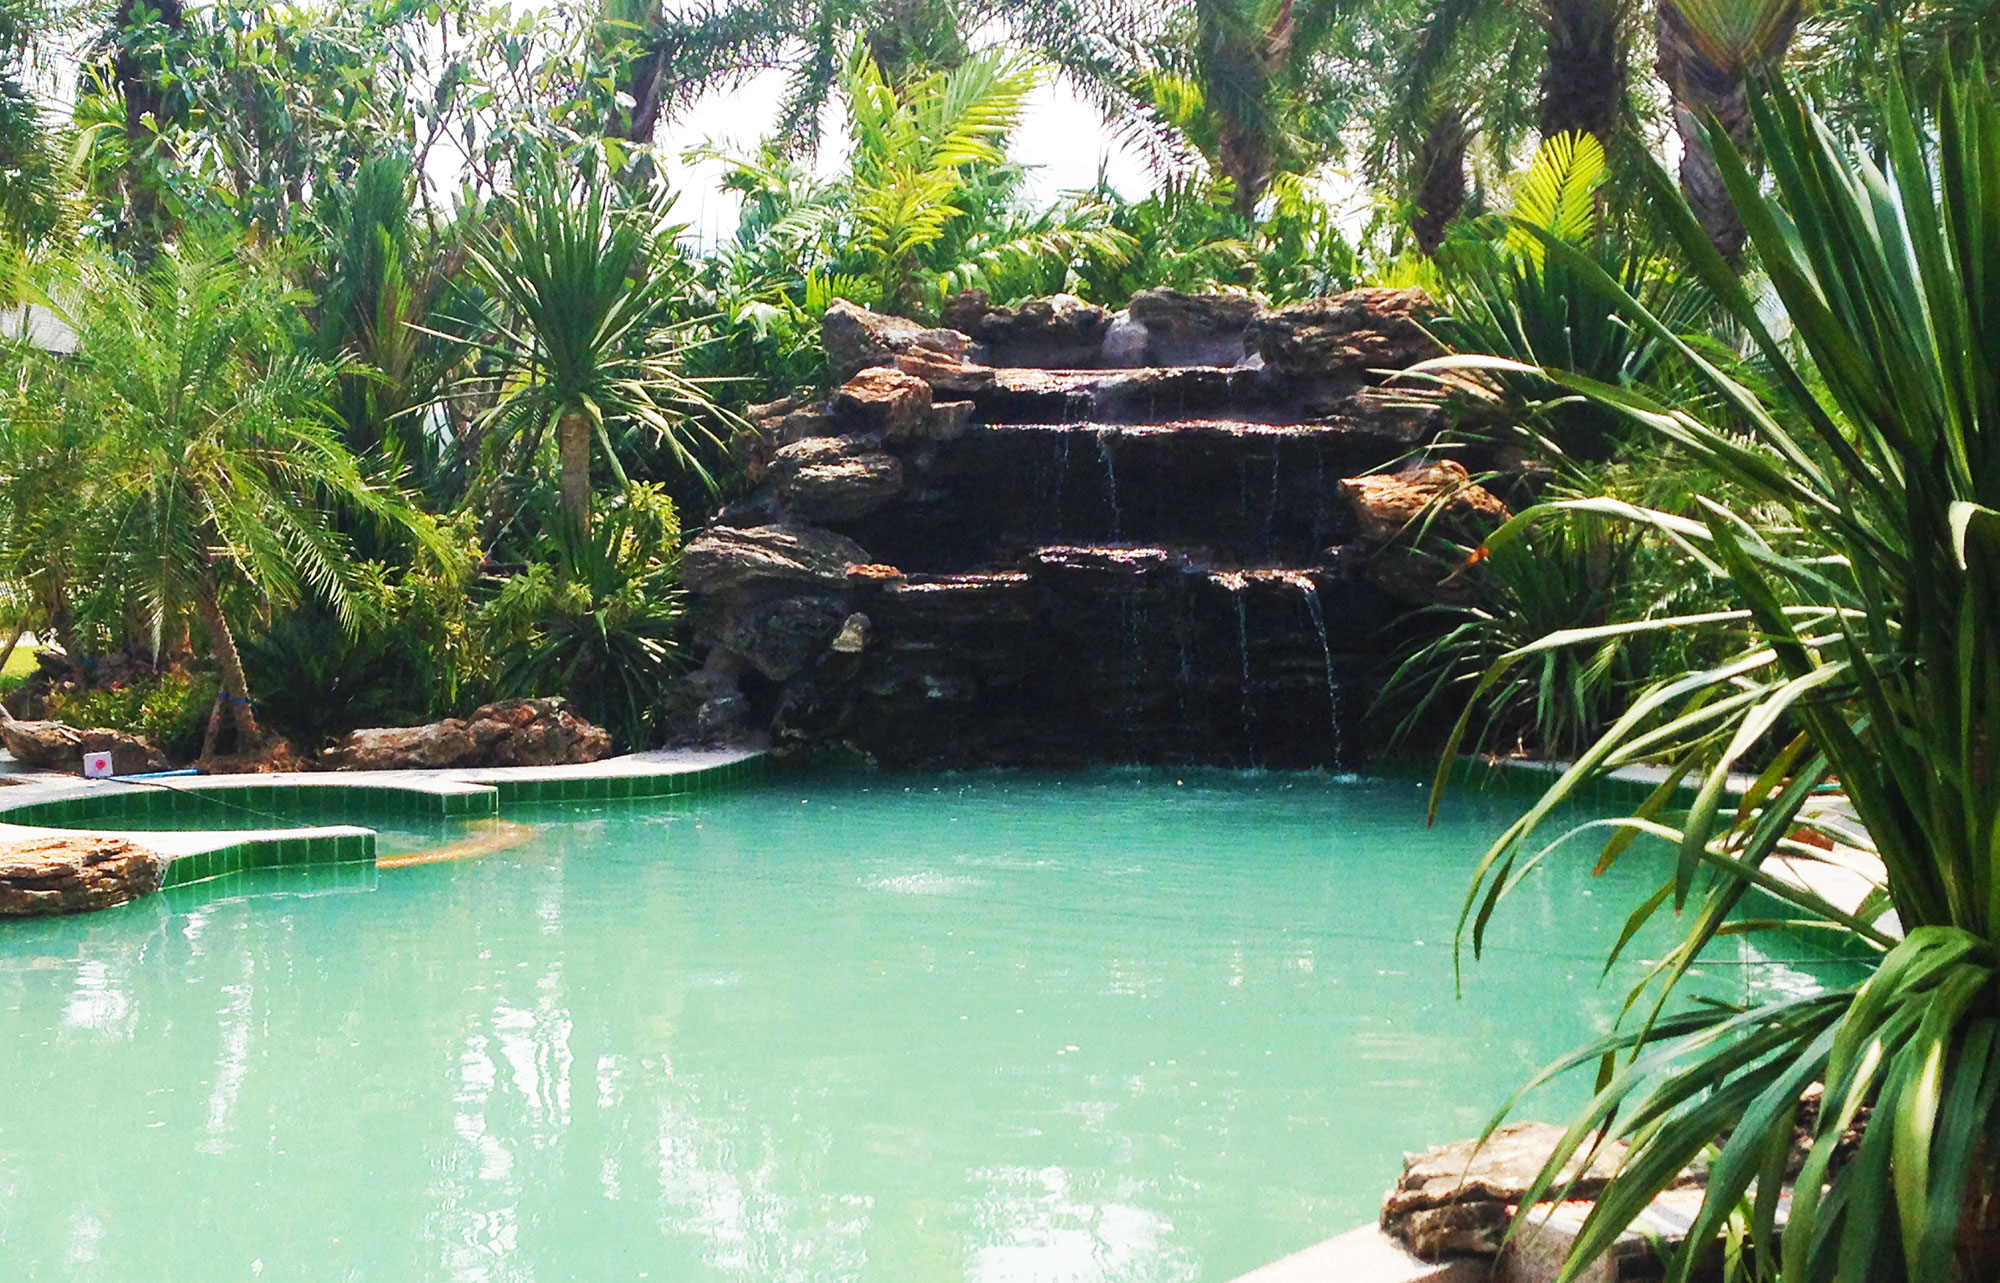 Pool Waterfall Construction And Tropical Garden At Fishing